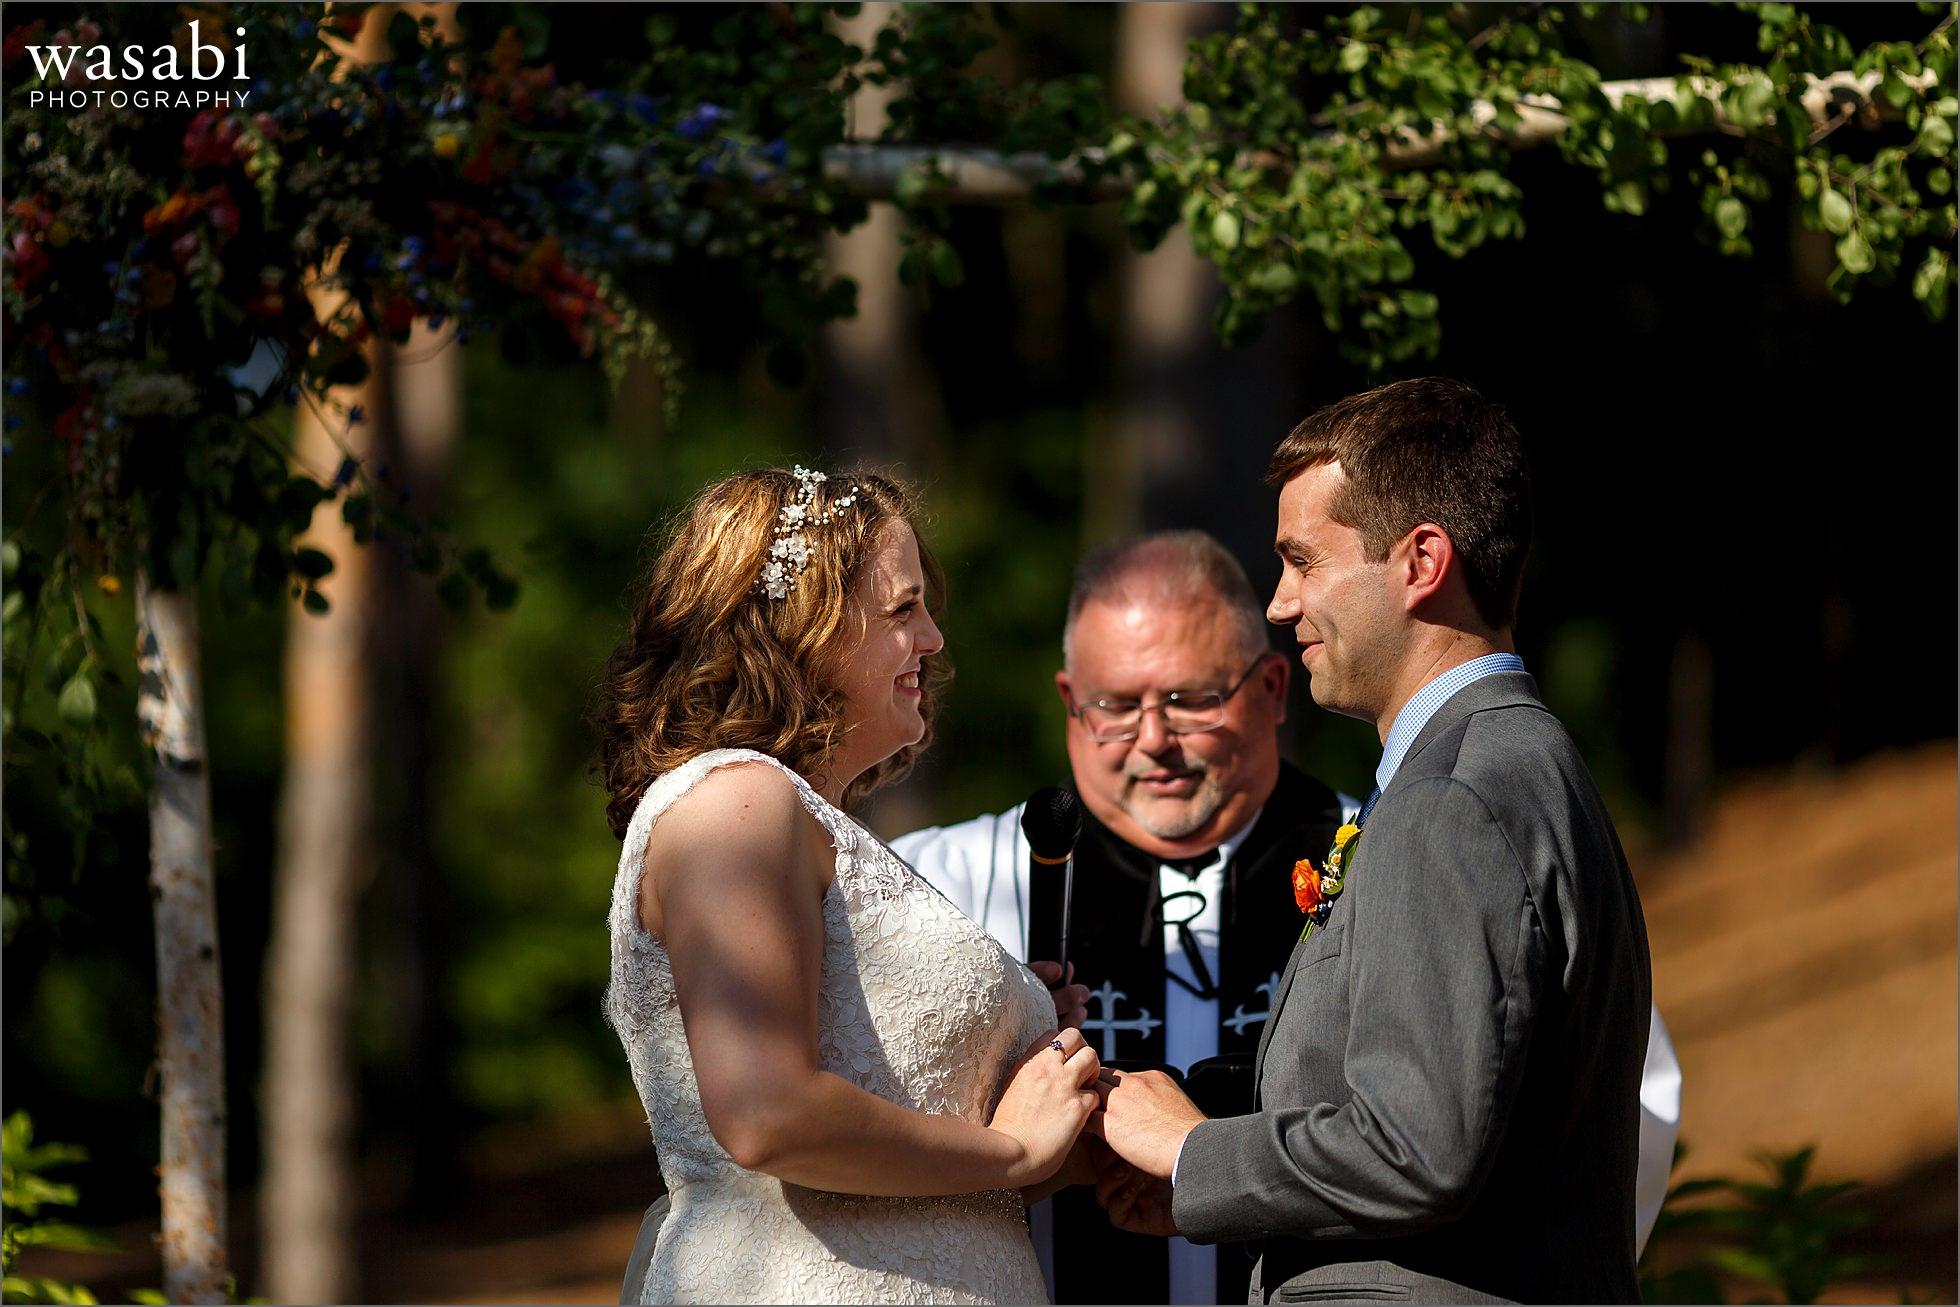 bride and groom exchange rings Oakhurst Country Club wedding photos during outdoor ceremony in Clarkston, Michigan